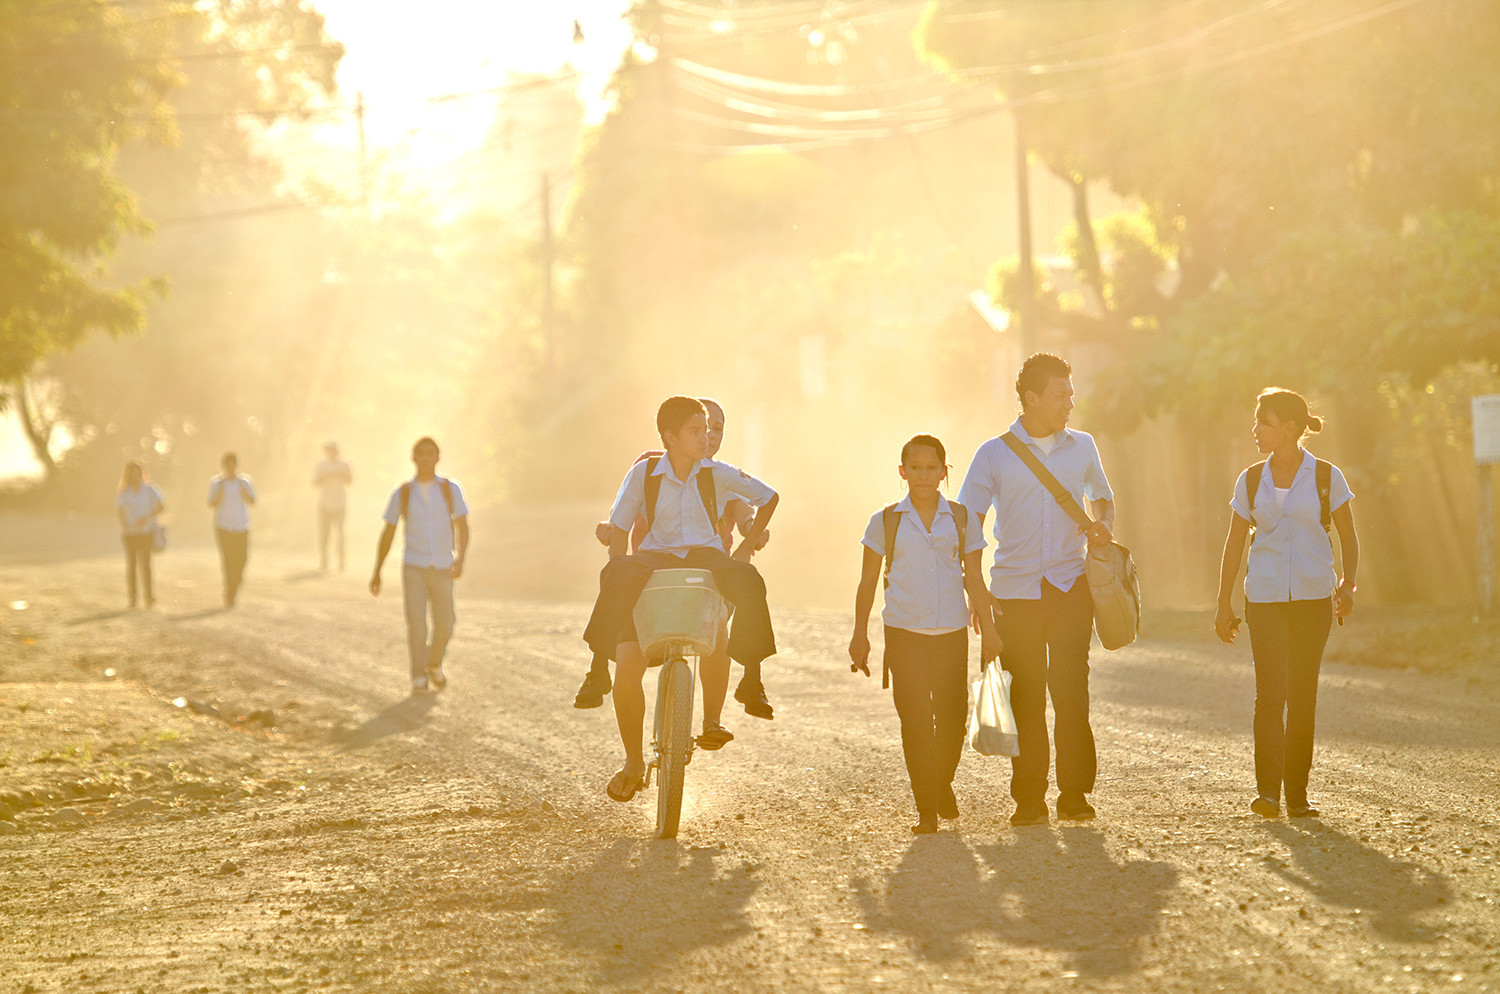 walking-to-school-caminando-a-la-escuela.jpg